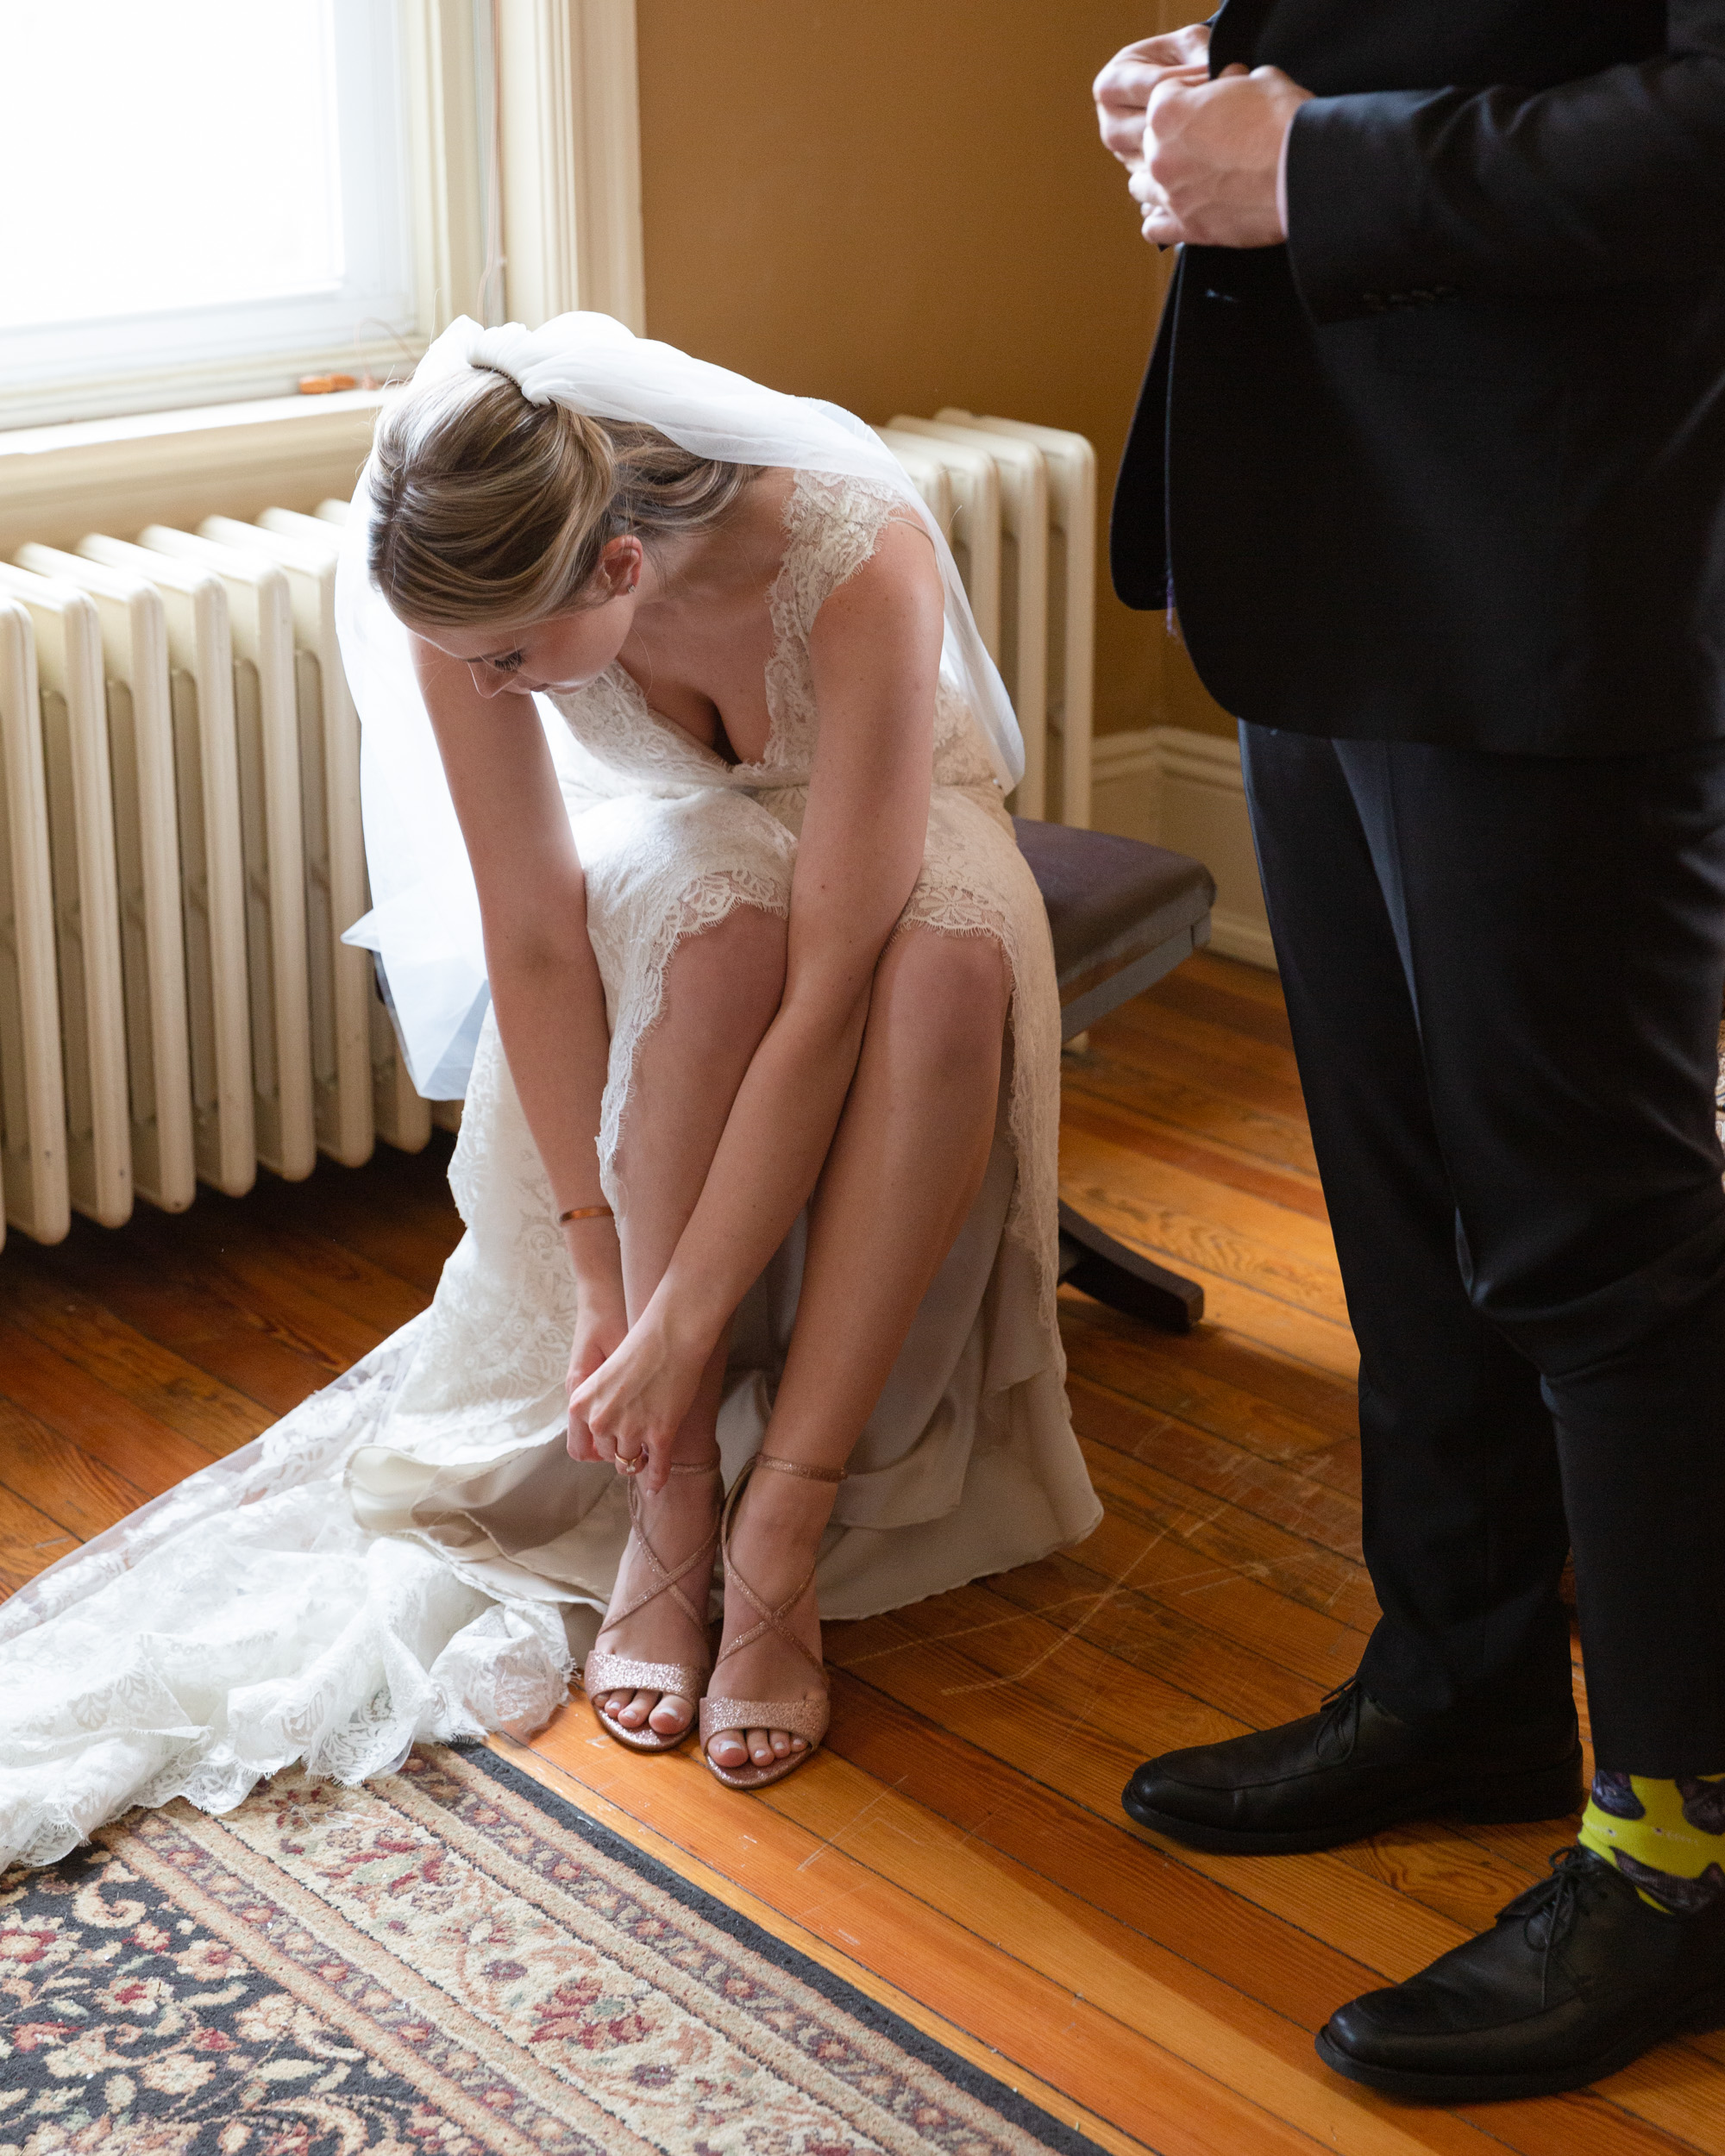 Elegant bride buckles her shoe while getting ready before her wedding ceremony at the Sayre Mansion in Bethlehem, PA while the groom stands next to her by Laura Billingham Photography